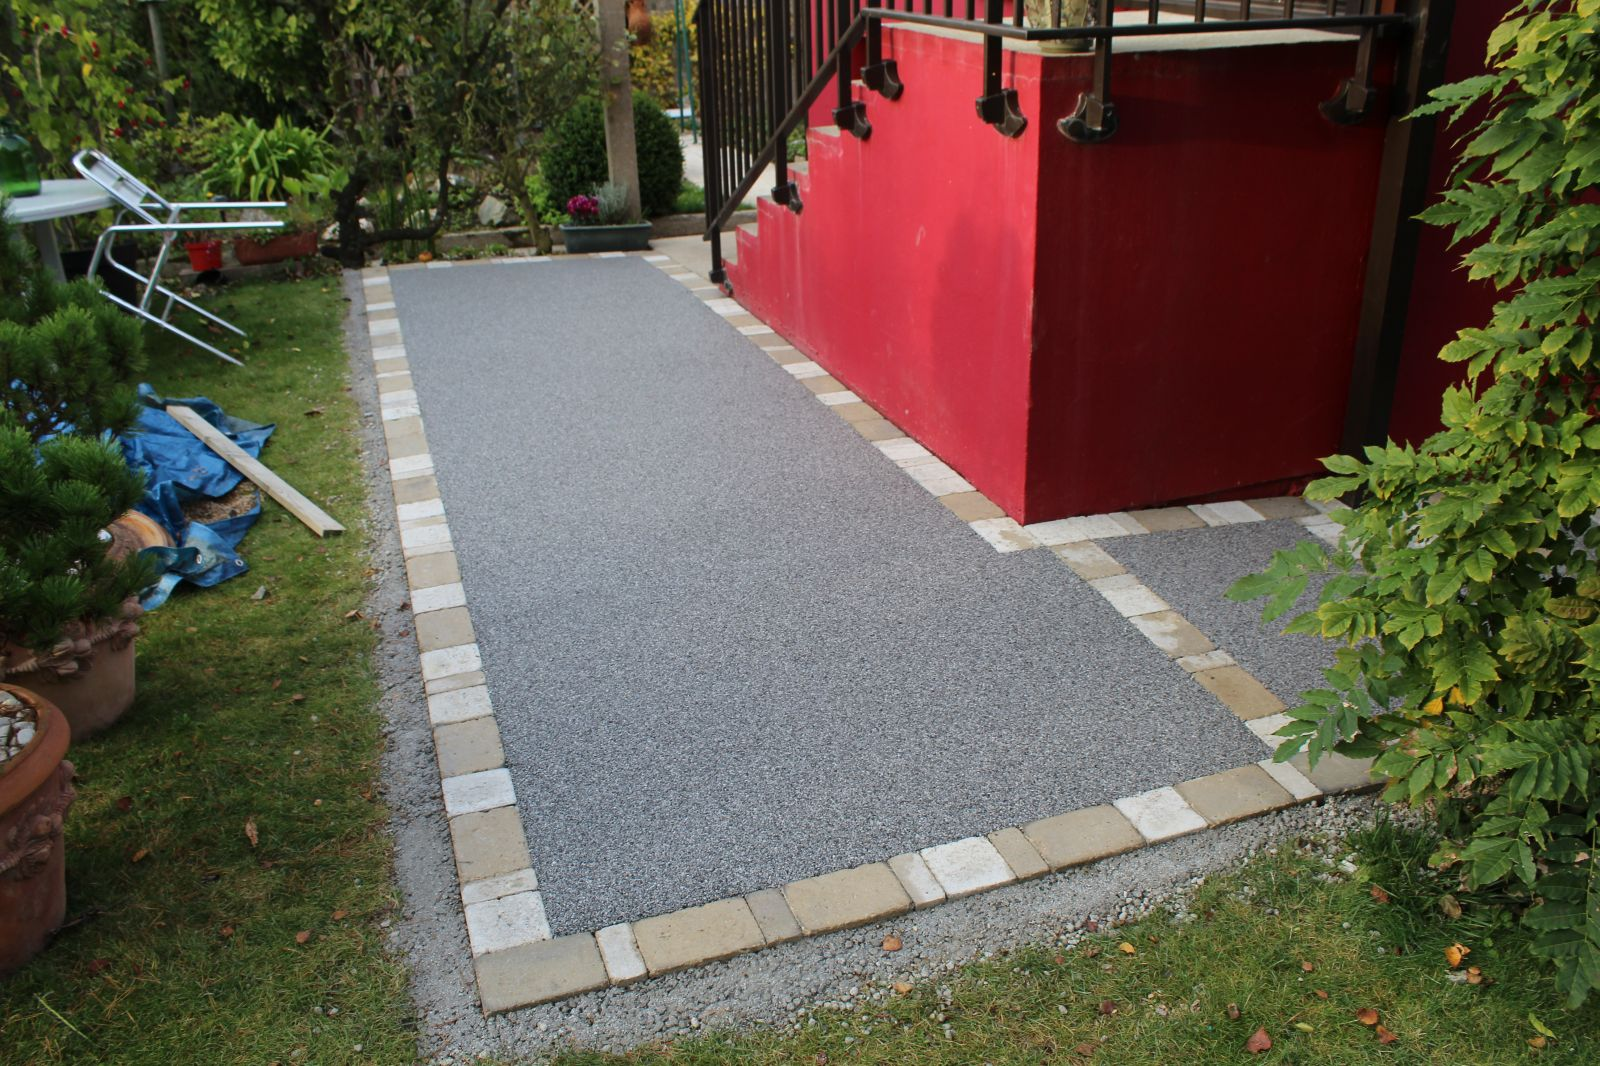 Prix carrelage piscine m2 28 images carrelage sol sans for Prix piscine terrasse